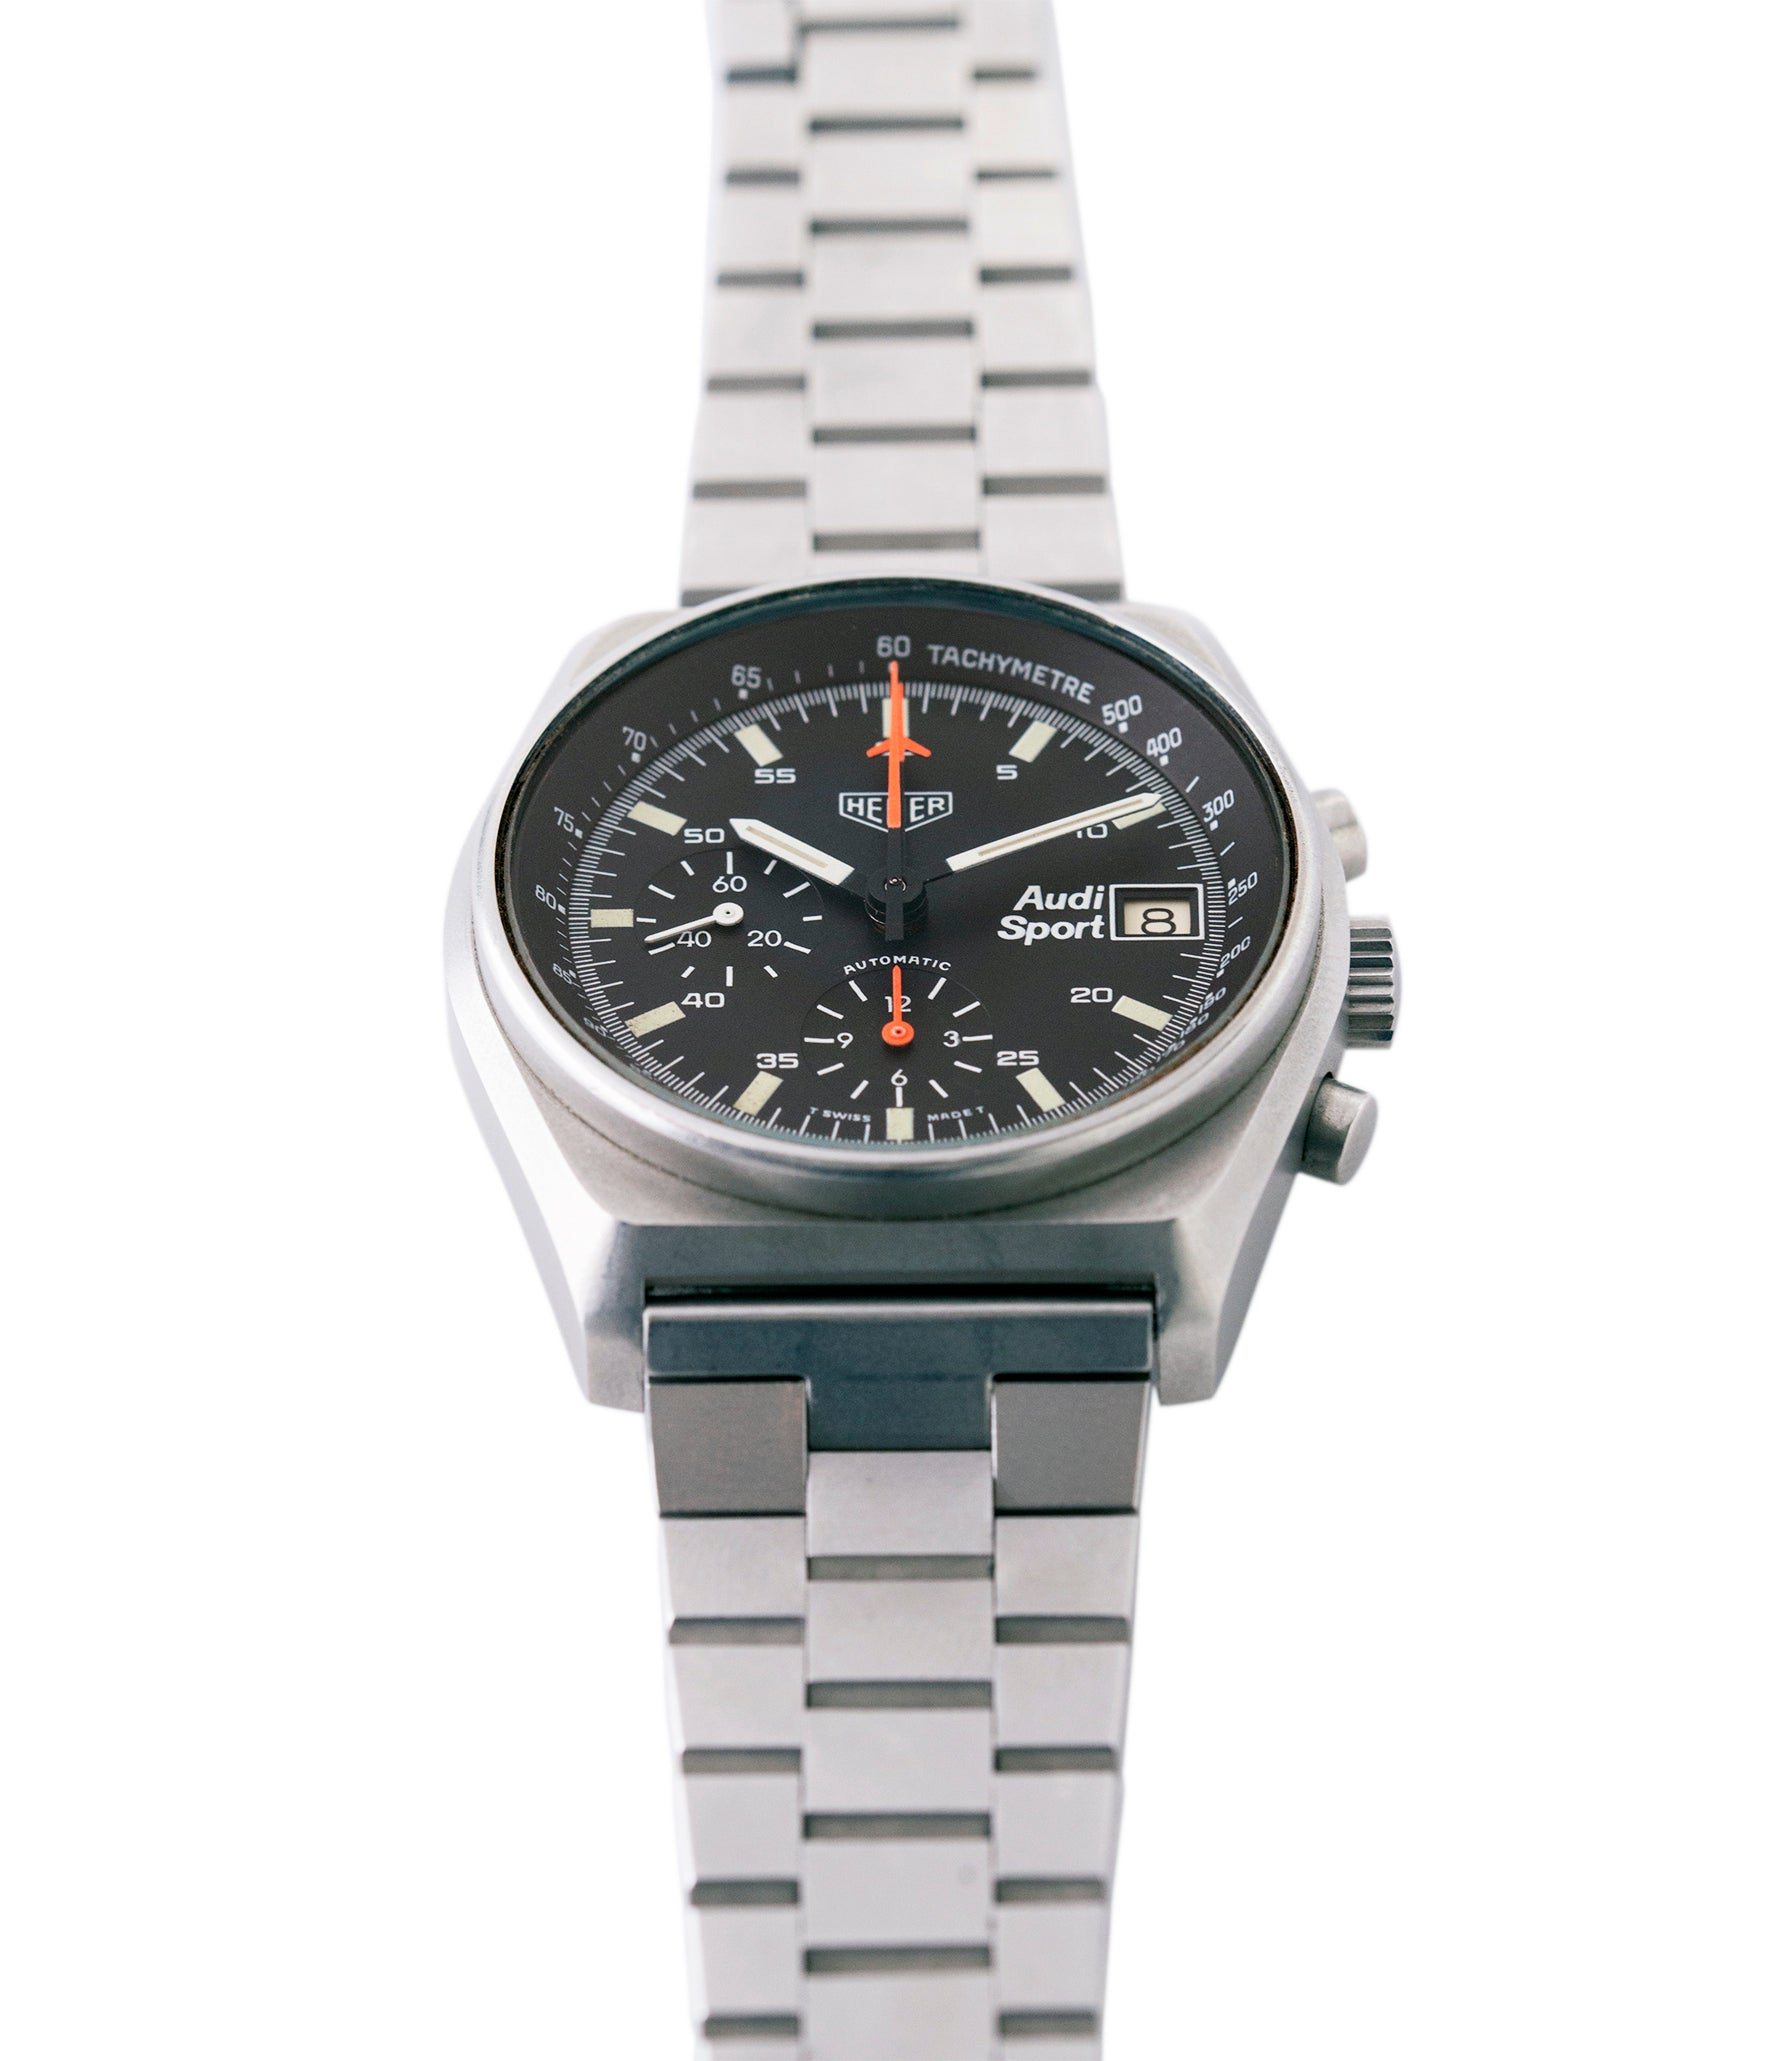 vintage sport chronograph Heuer Sport Audi 510.533 vintage steel chronograph watch for sale online at A Collected Man London UK specialist of rare vintage watches